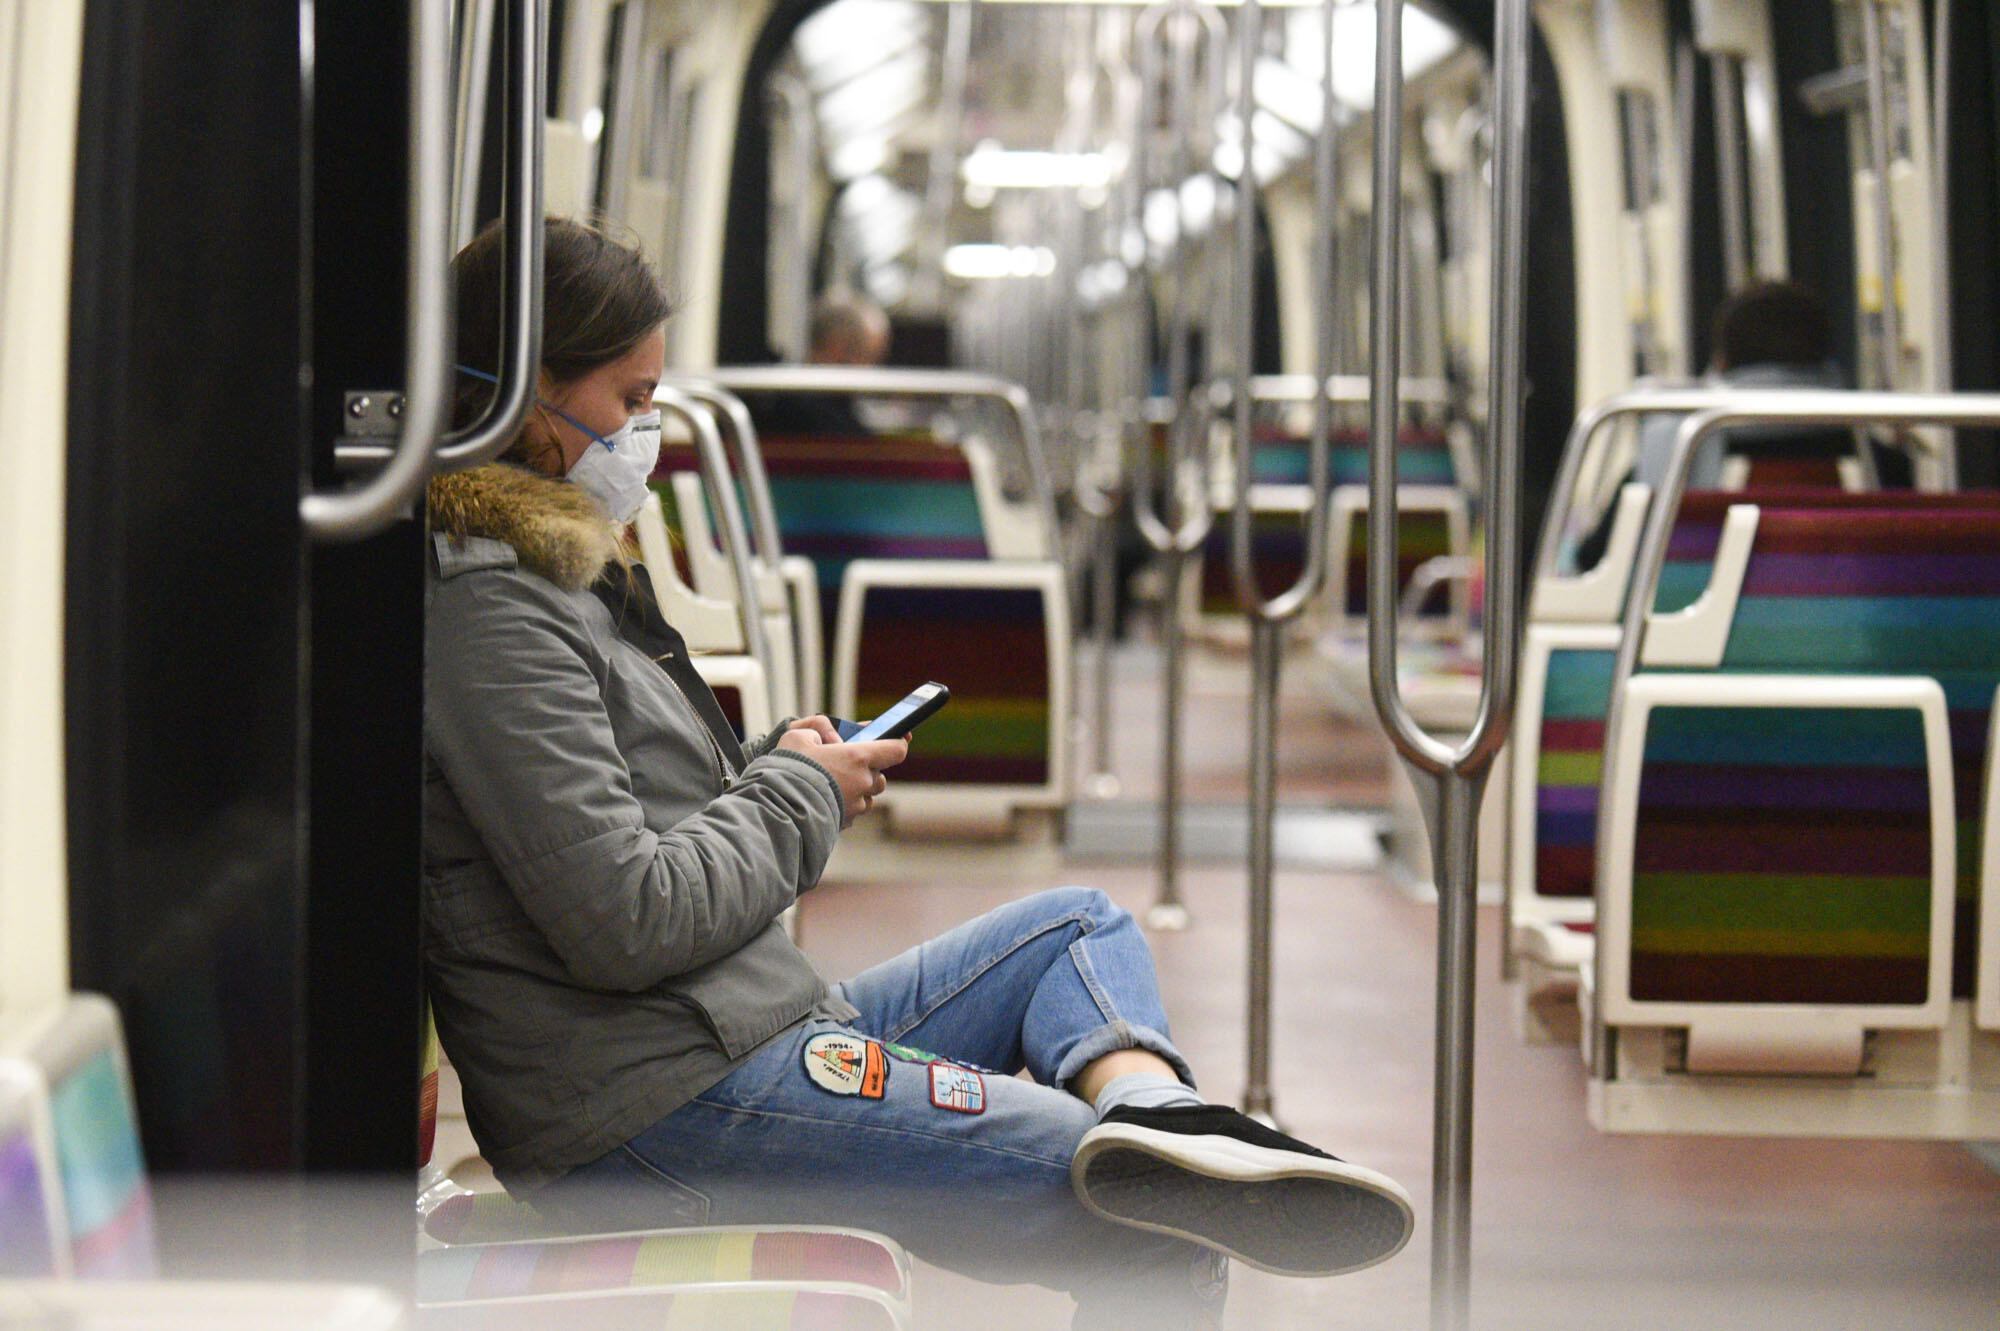 A woman with a protective mask sits alone in the Parisian metro. Metro, bus and tram services in Paris have been severely curtailed but are still functioning during the lockdown.